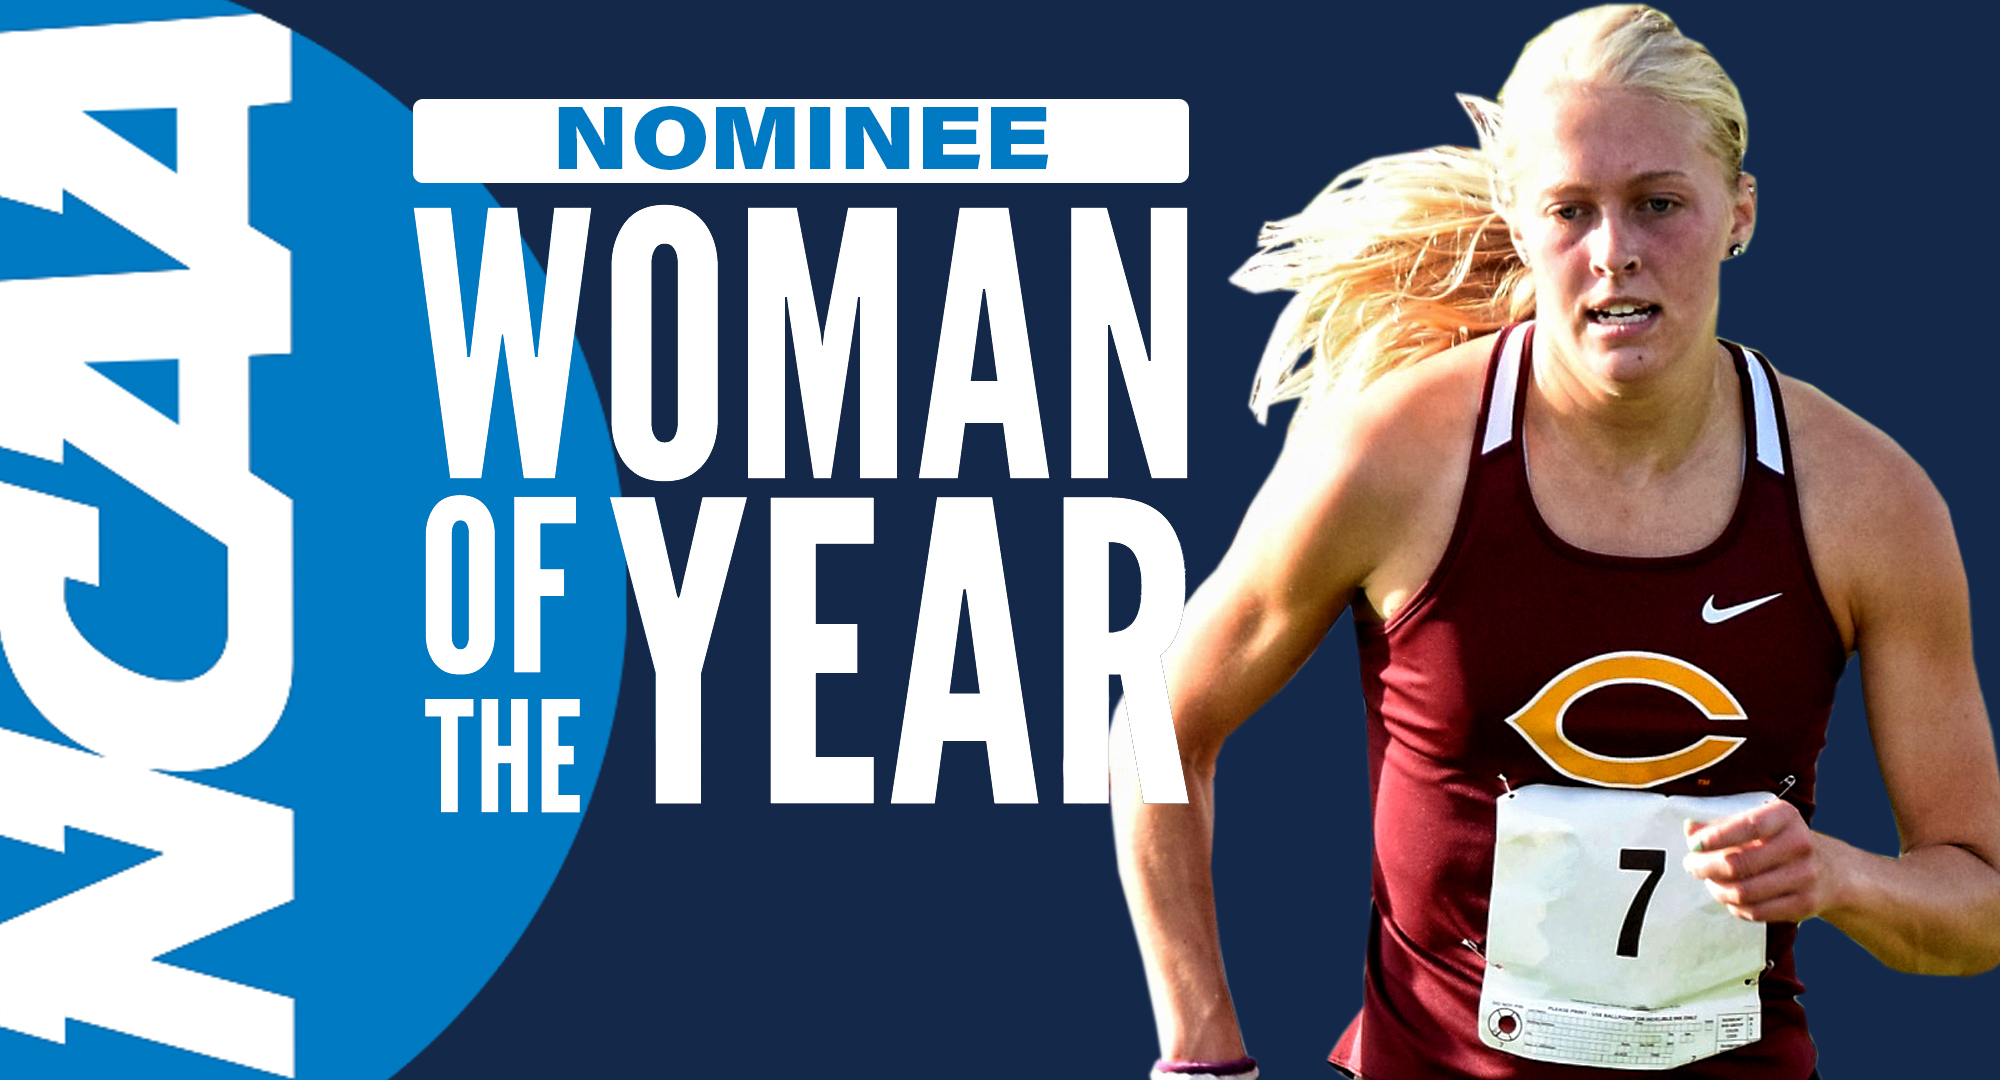 Miriah Forness is Concordia's nominee for the prestigious NCAA Woman of the Year award.